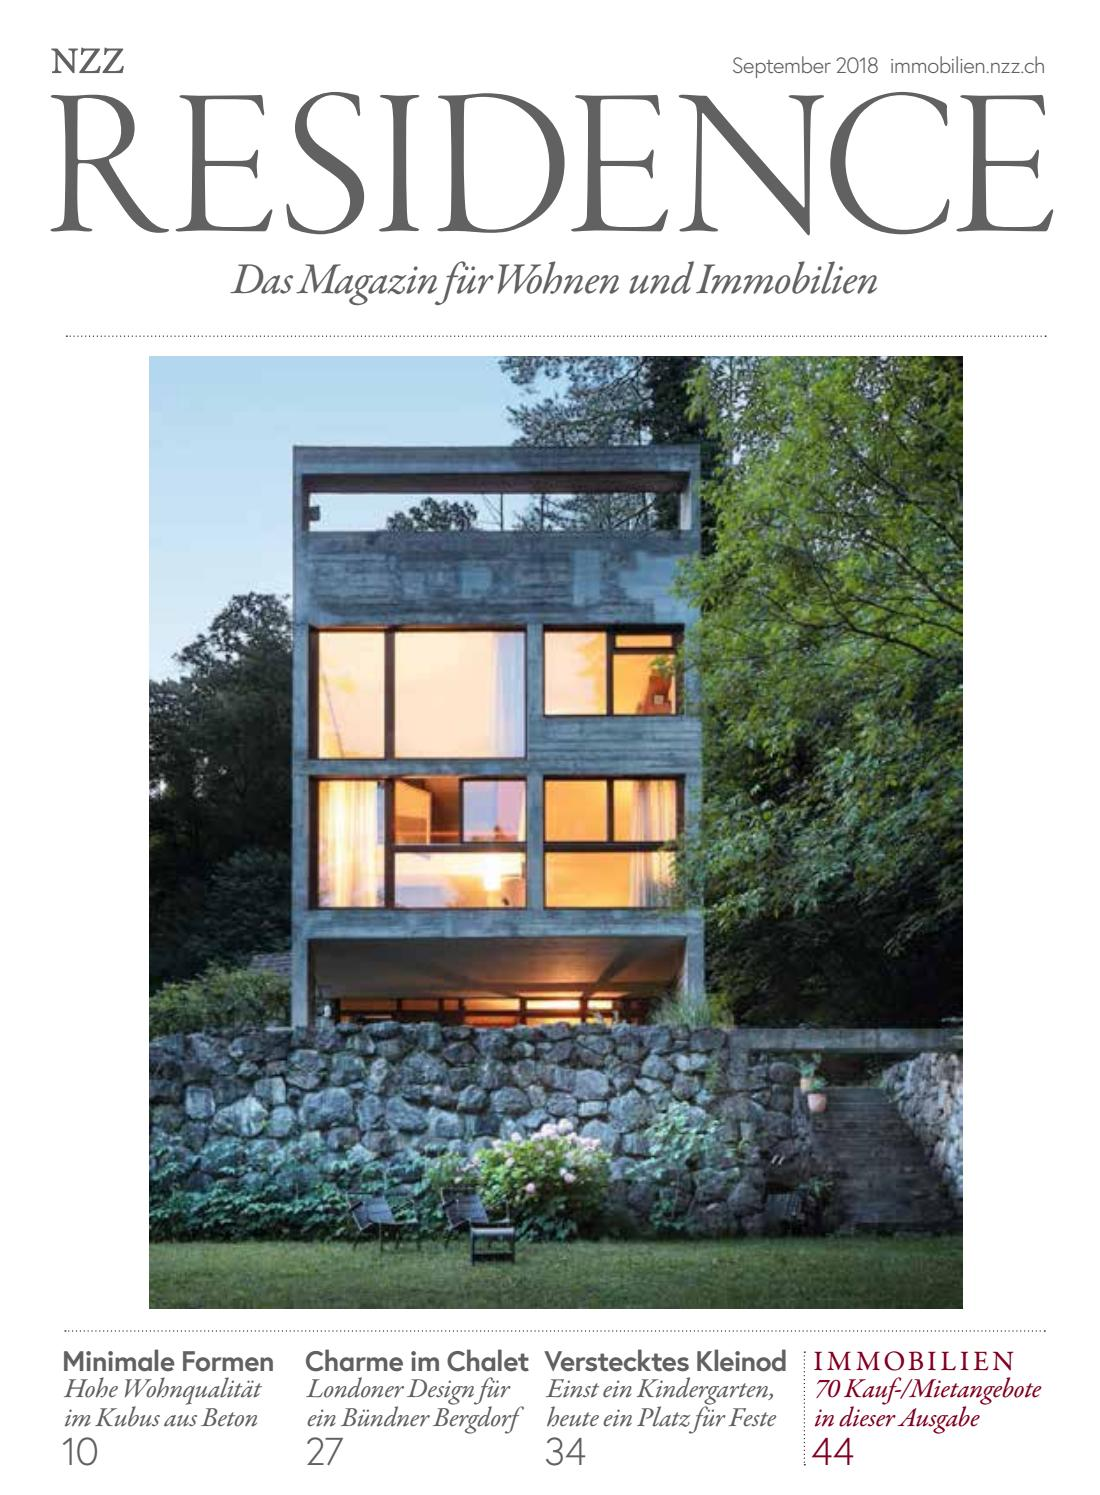 Innendesign Putz Residence September 2018 By Nzz Residence Issuu